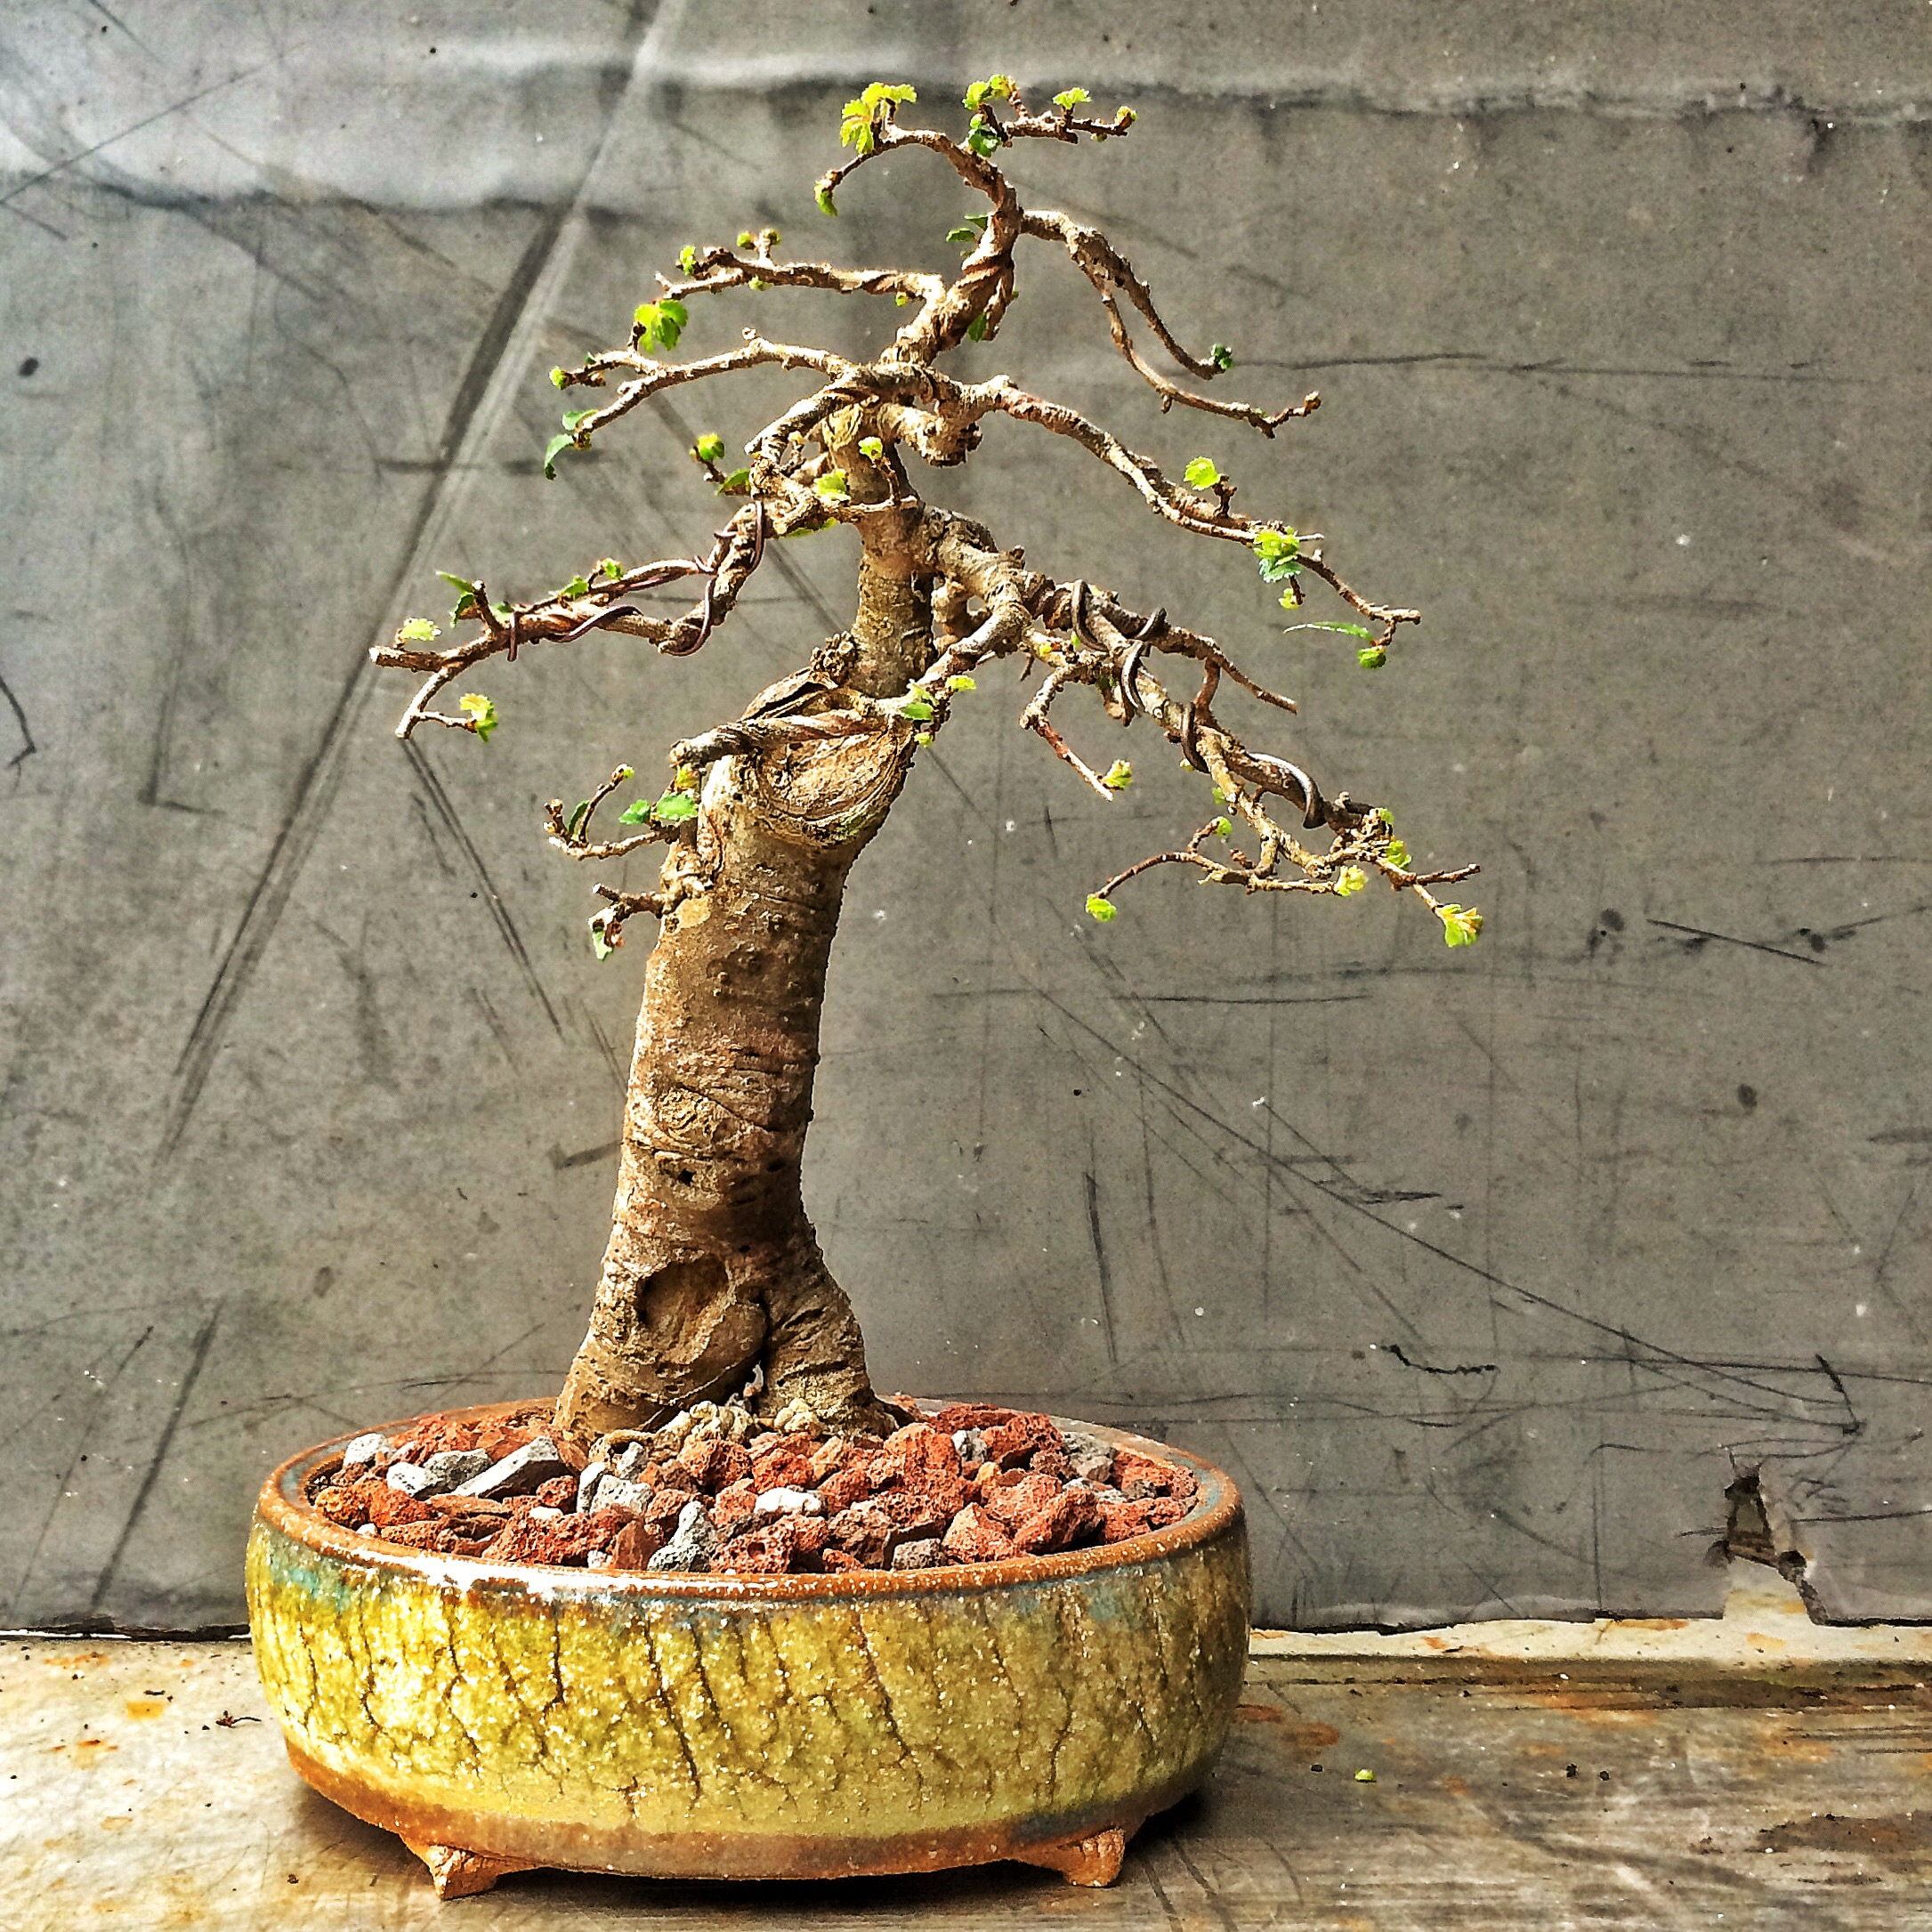 A Slightly Neglected Chinese Elm Adams Art And Bonsai Blog Wiring 2015 01 Img 0103